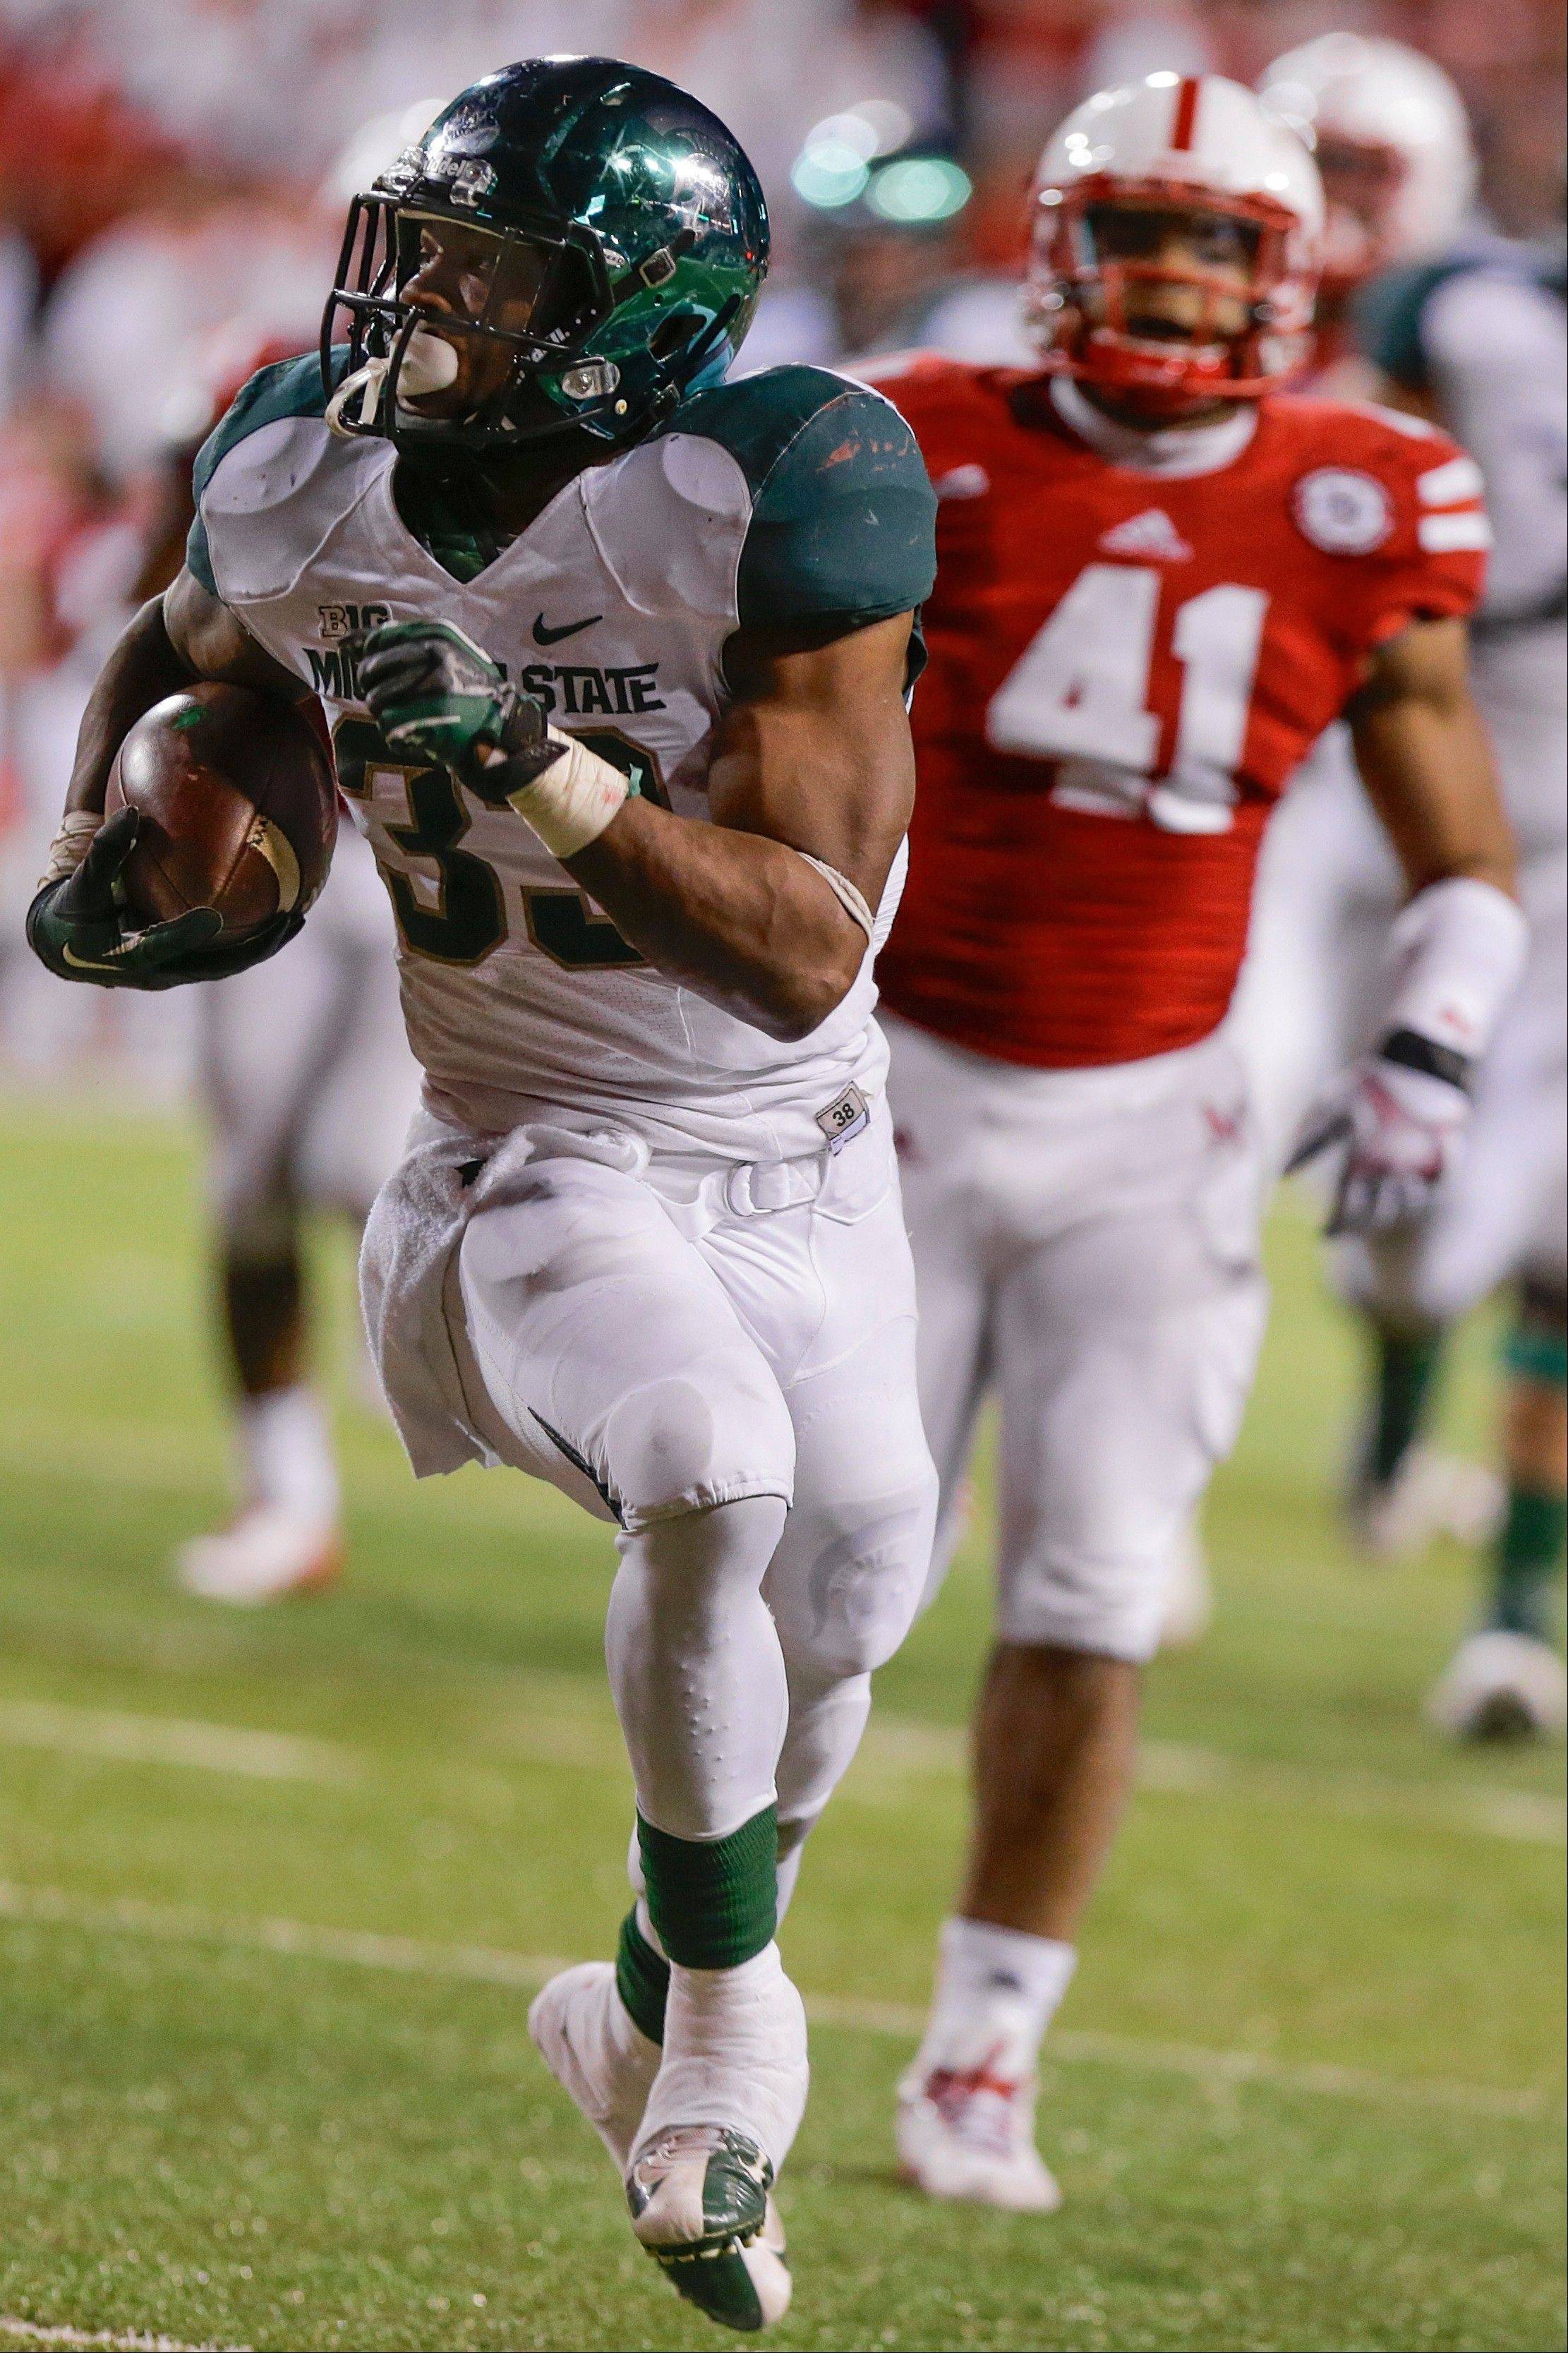 Michigan St. edges closer to Big Ten title game